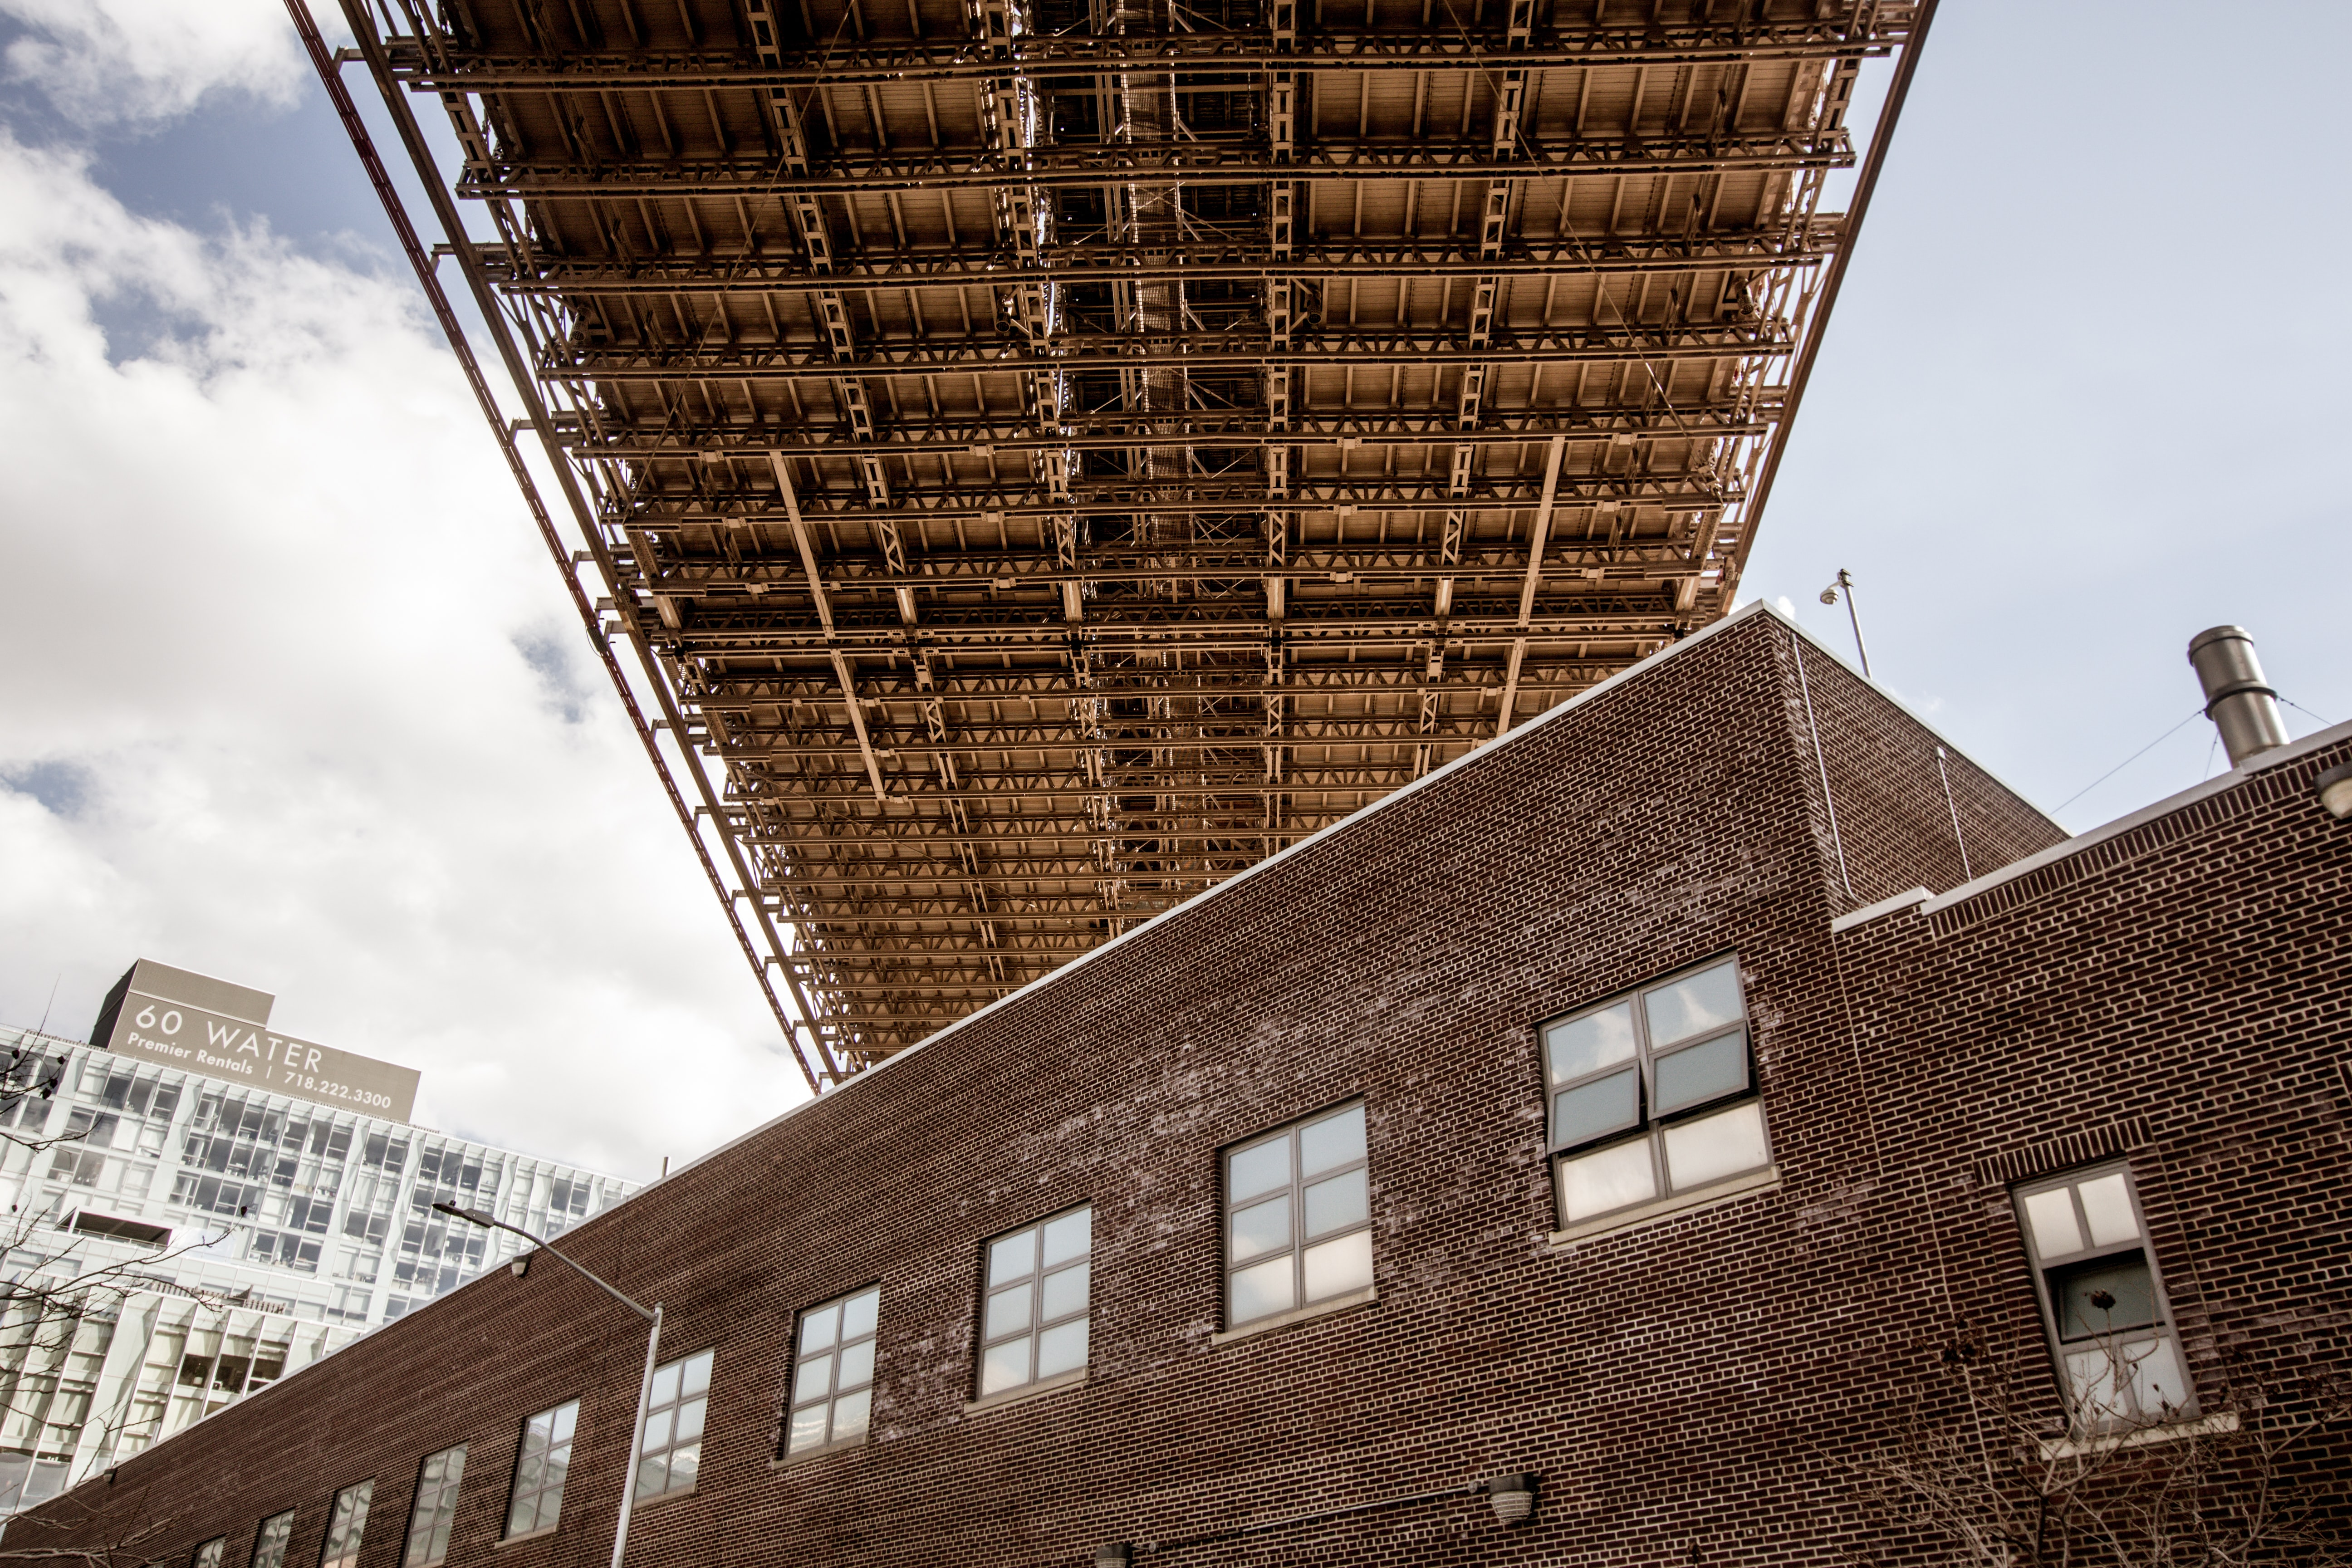 A brick building under the ramp of the Brooklyn Bridge in New York City